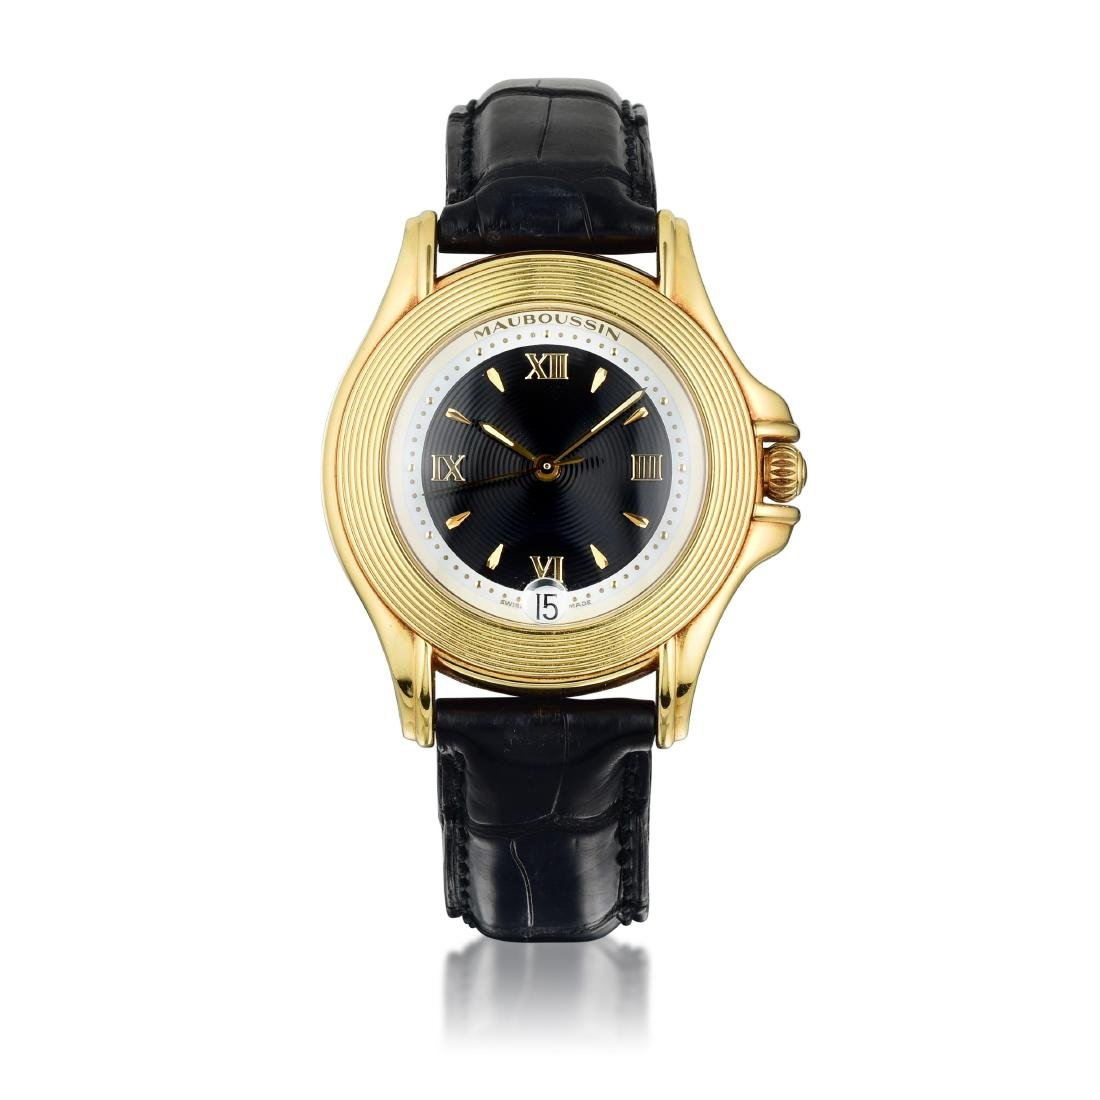 Mauboussin Ref. R.02368 in 18K Gold